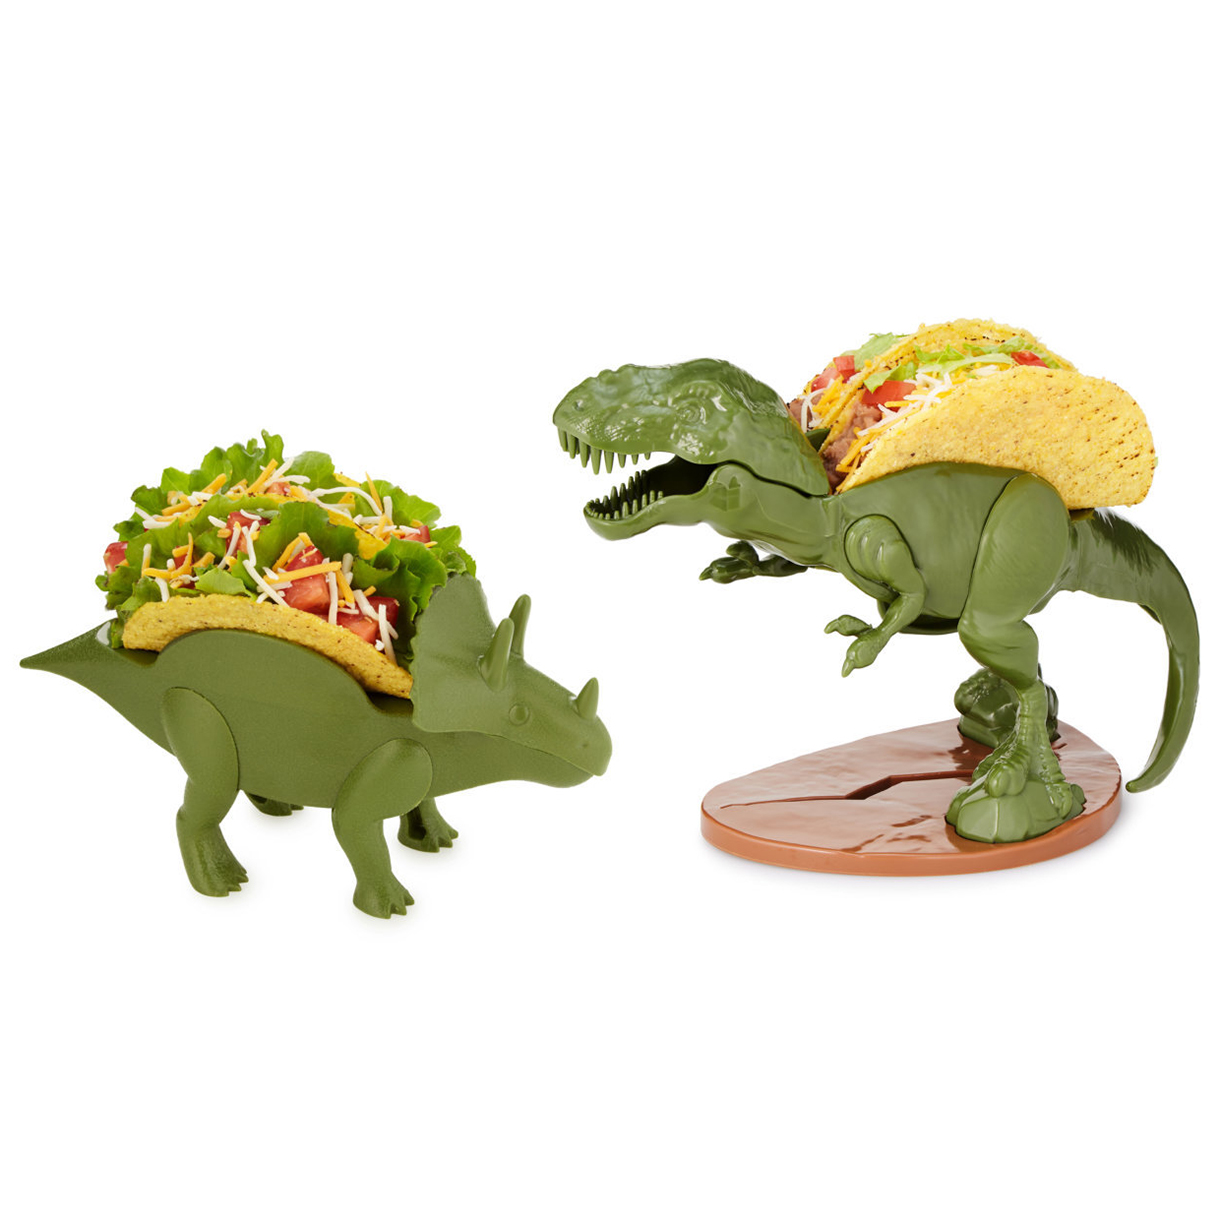 Funny gifts for men - Dinosaur Taco Holders